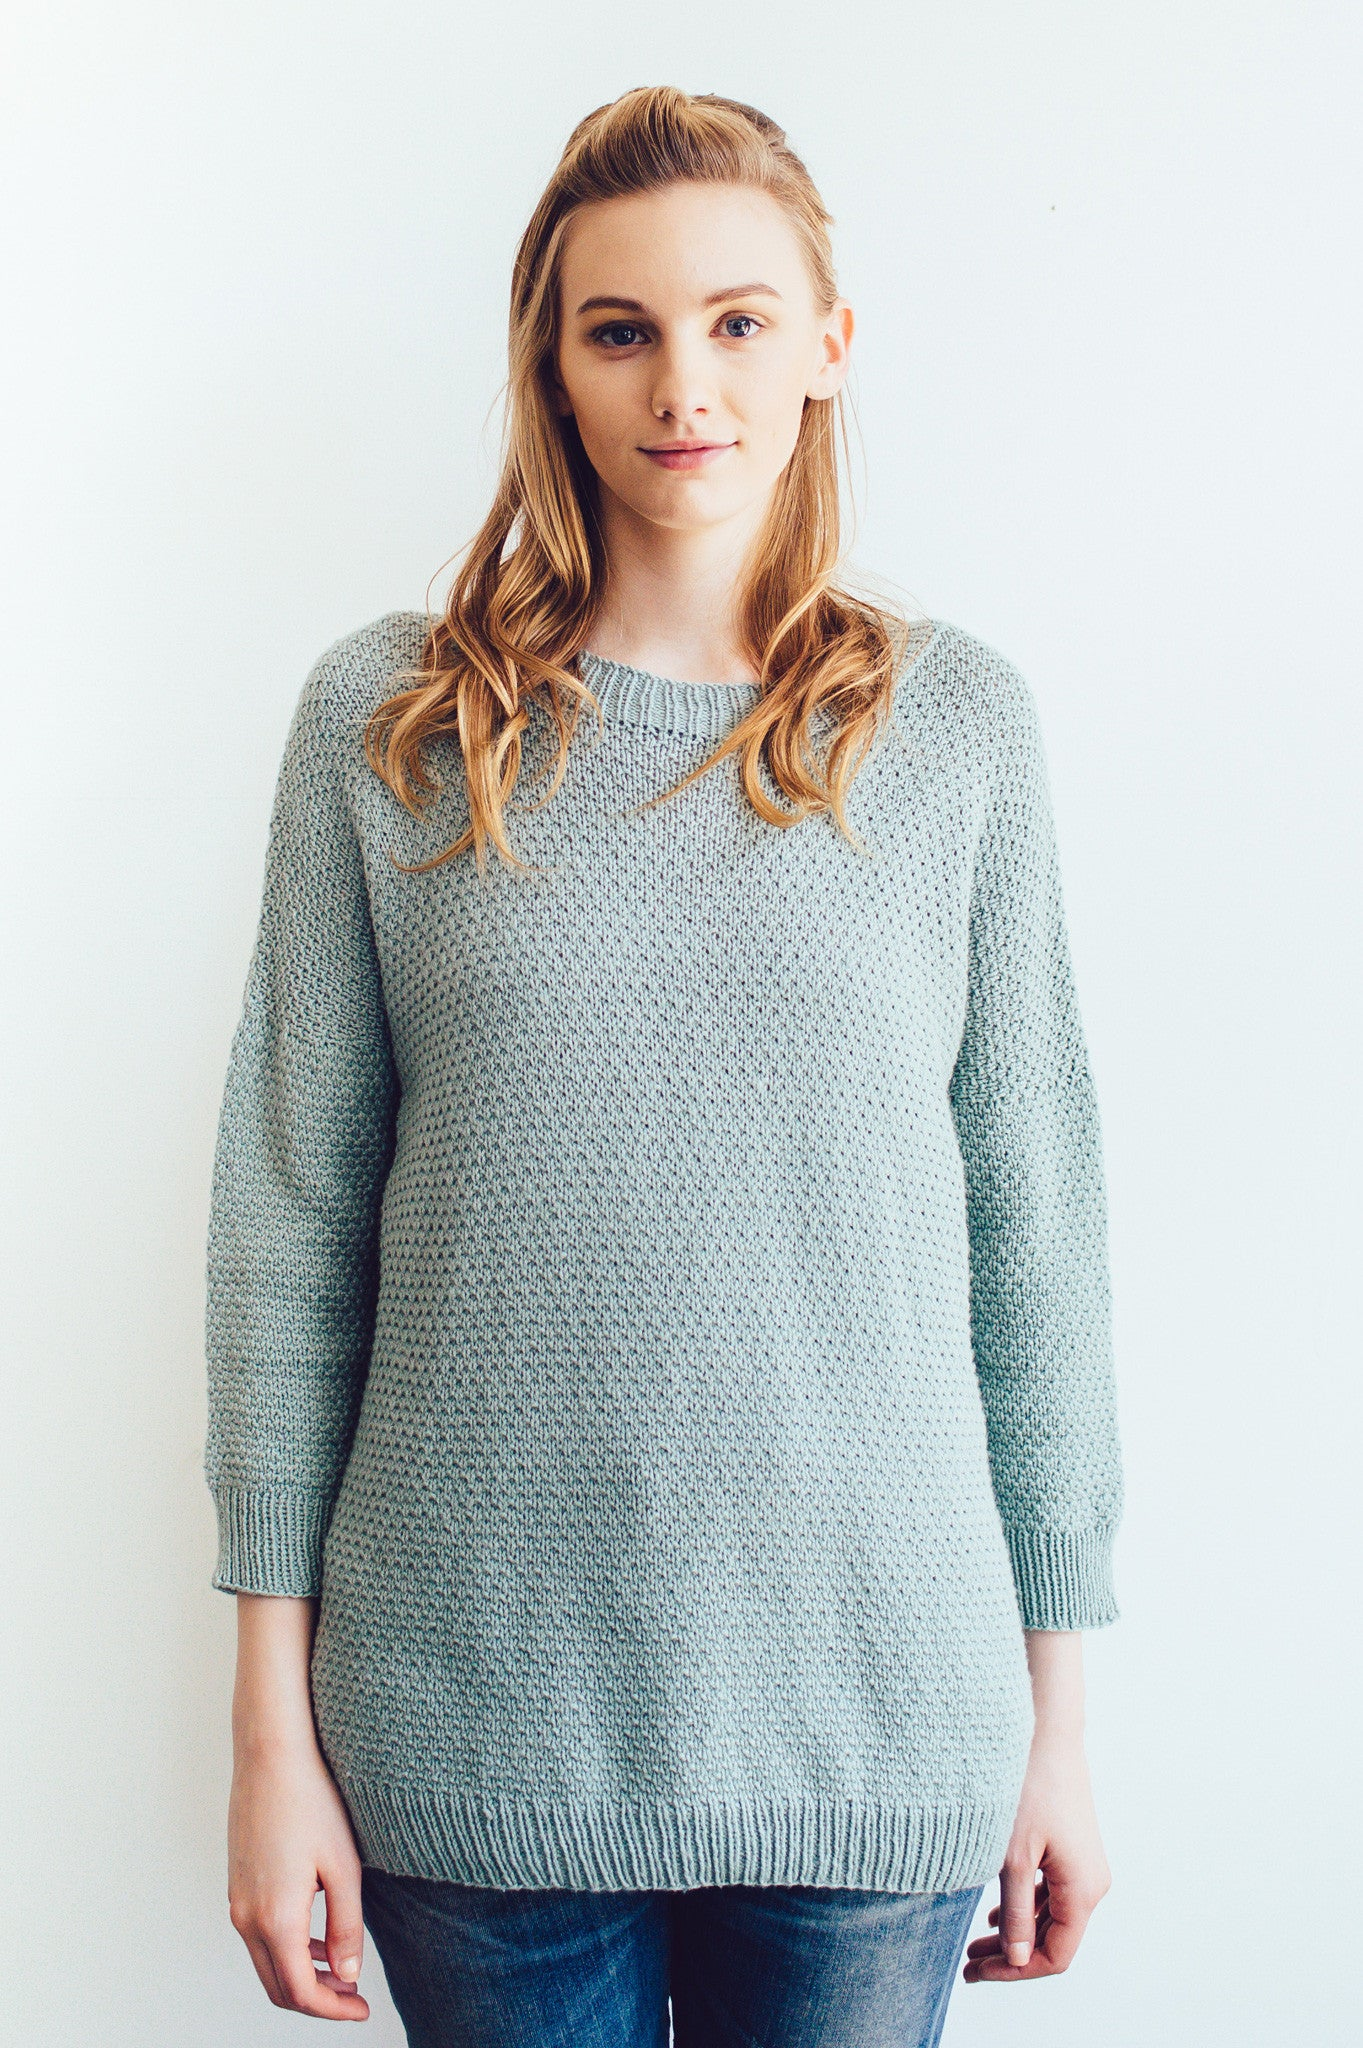 jennie drop shoulder knitting pattern - Quince and Co